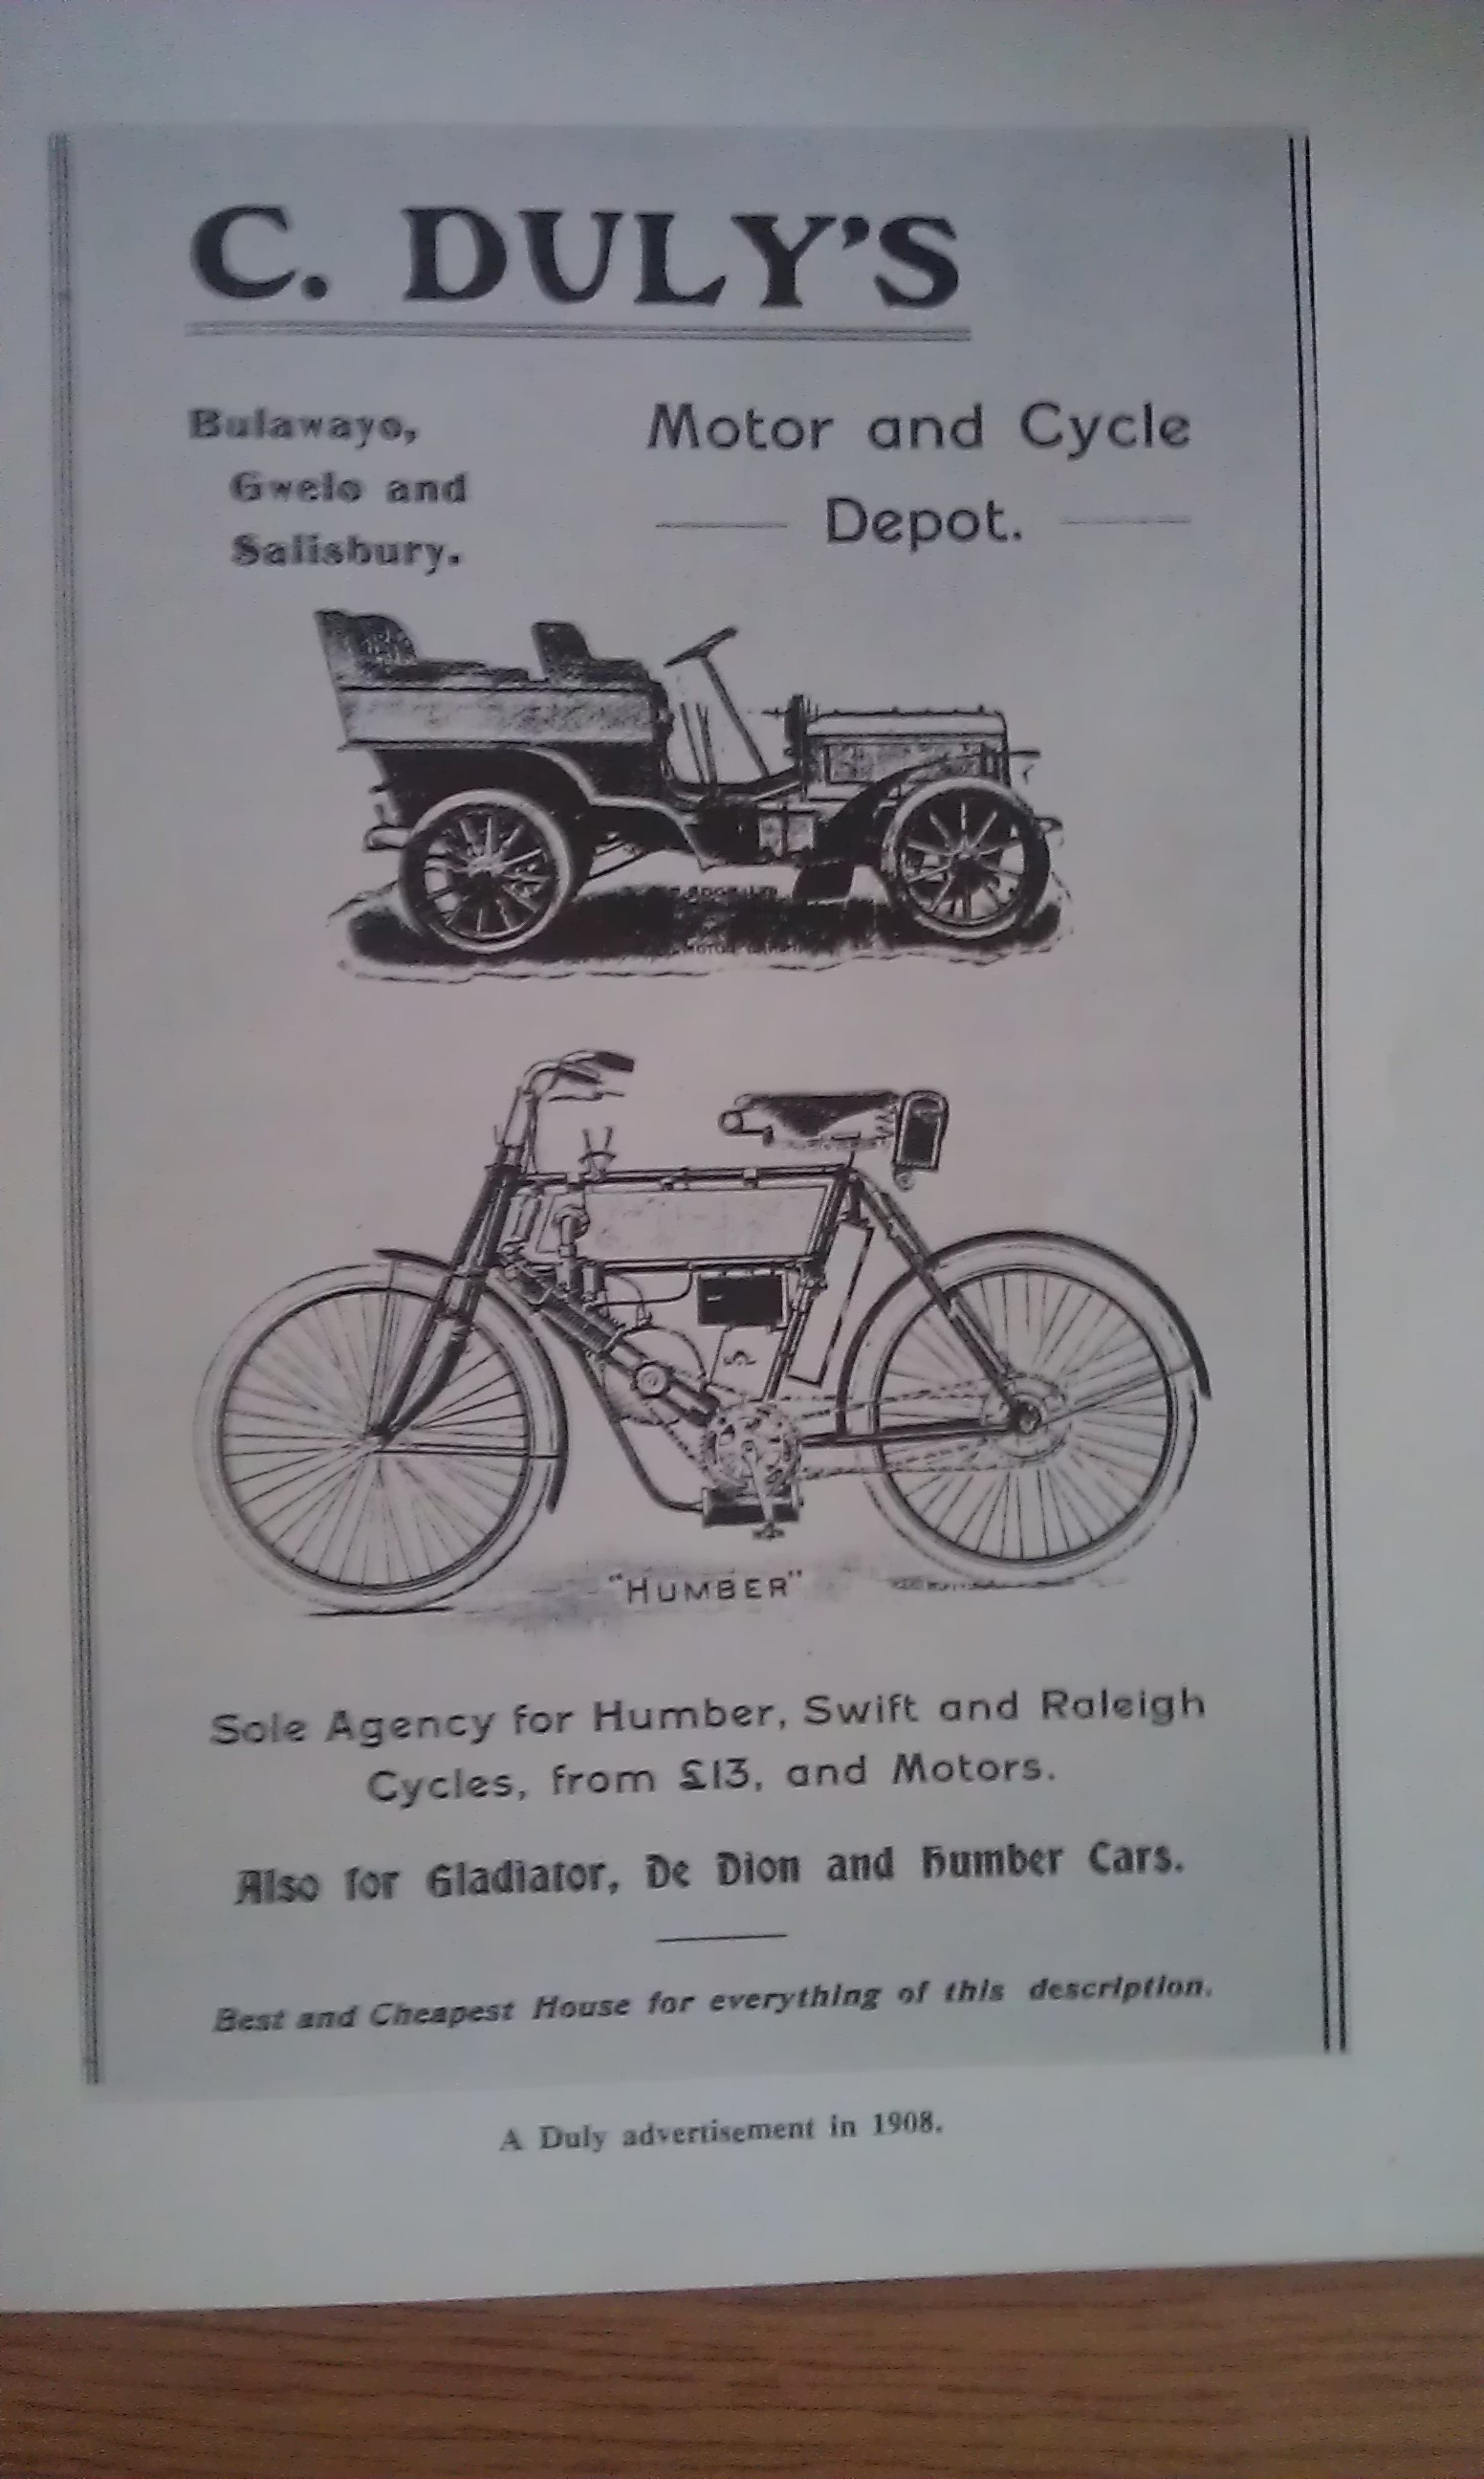 Colonial creativity steppes in sync a charles duly motor and cycle depot ad in 1908 fandeluxe